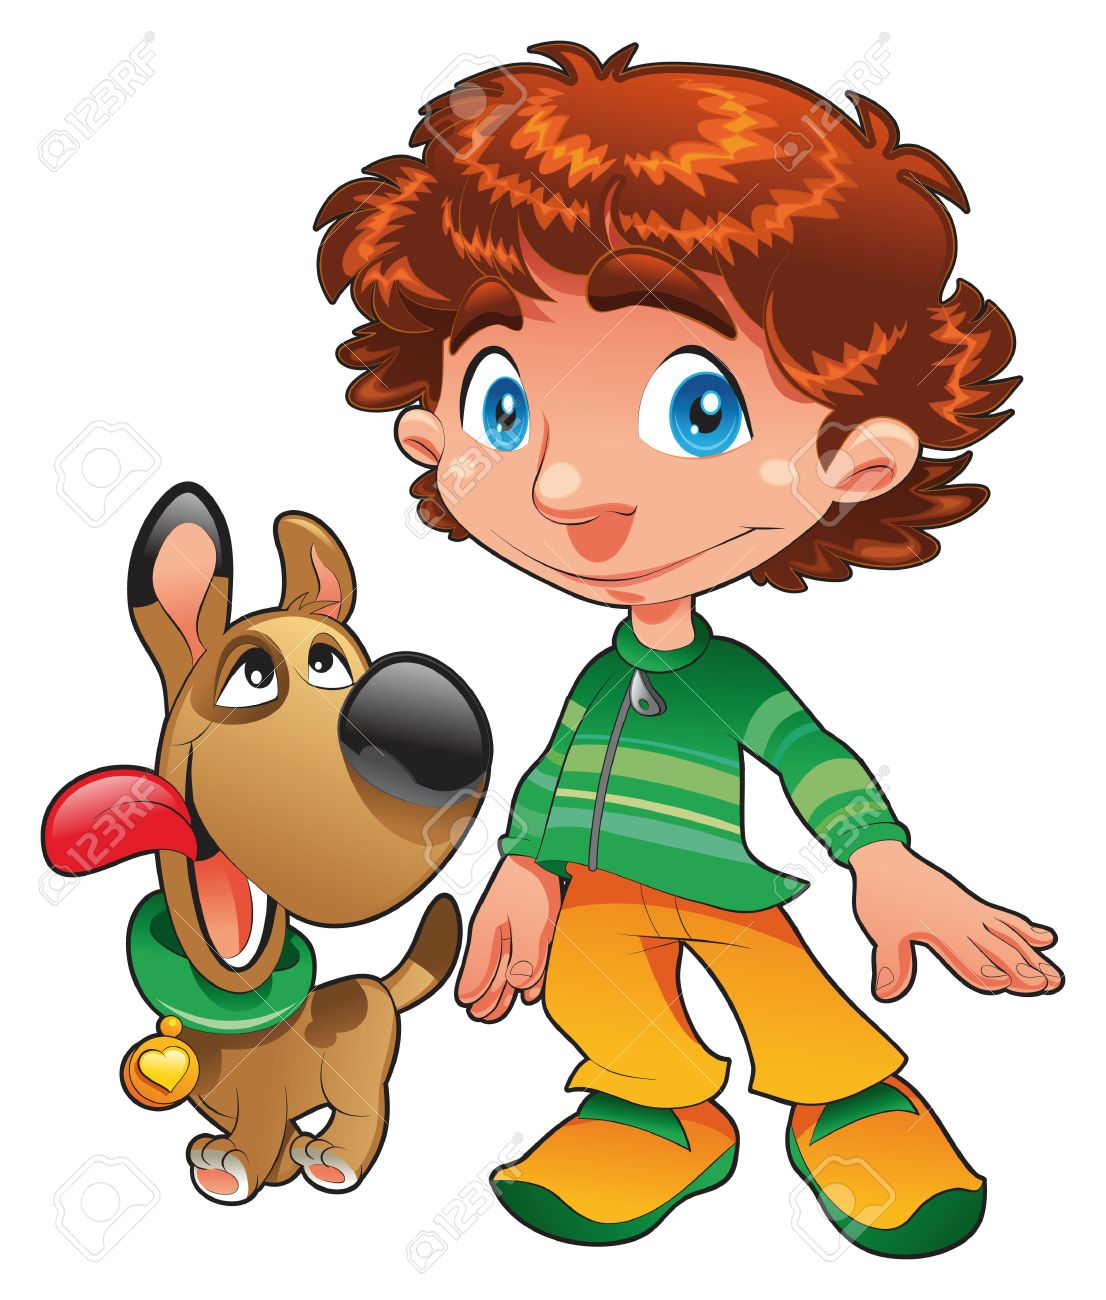 Boy with Dog friend, cartoon and vecto character Stock Vector - 5538983